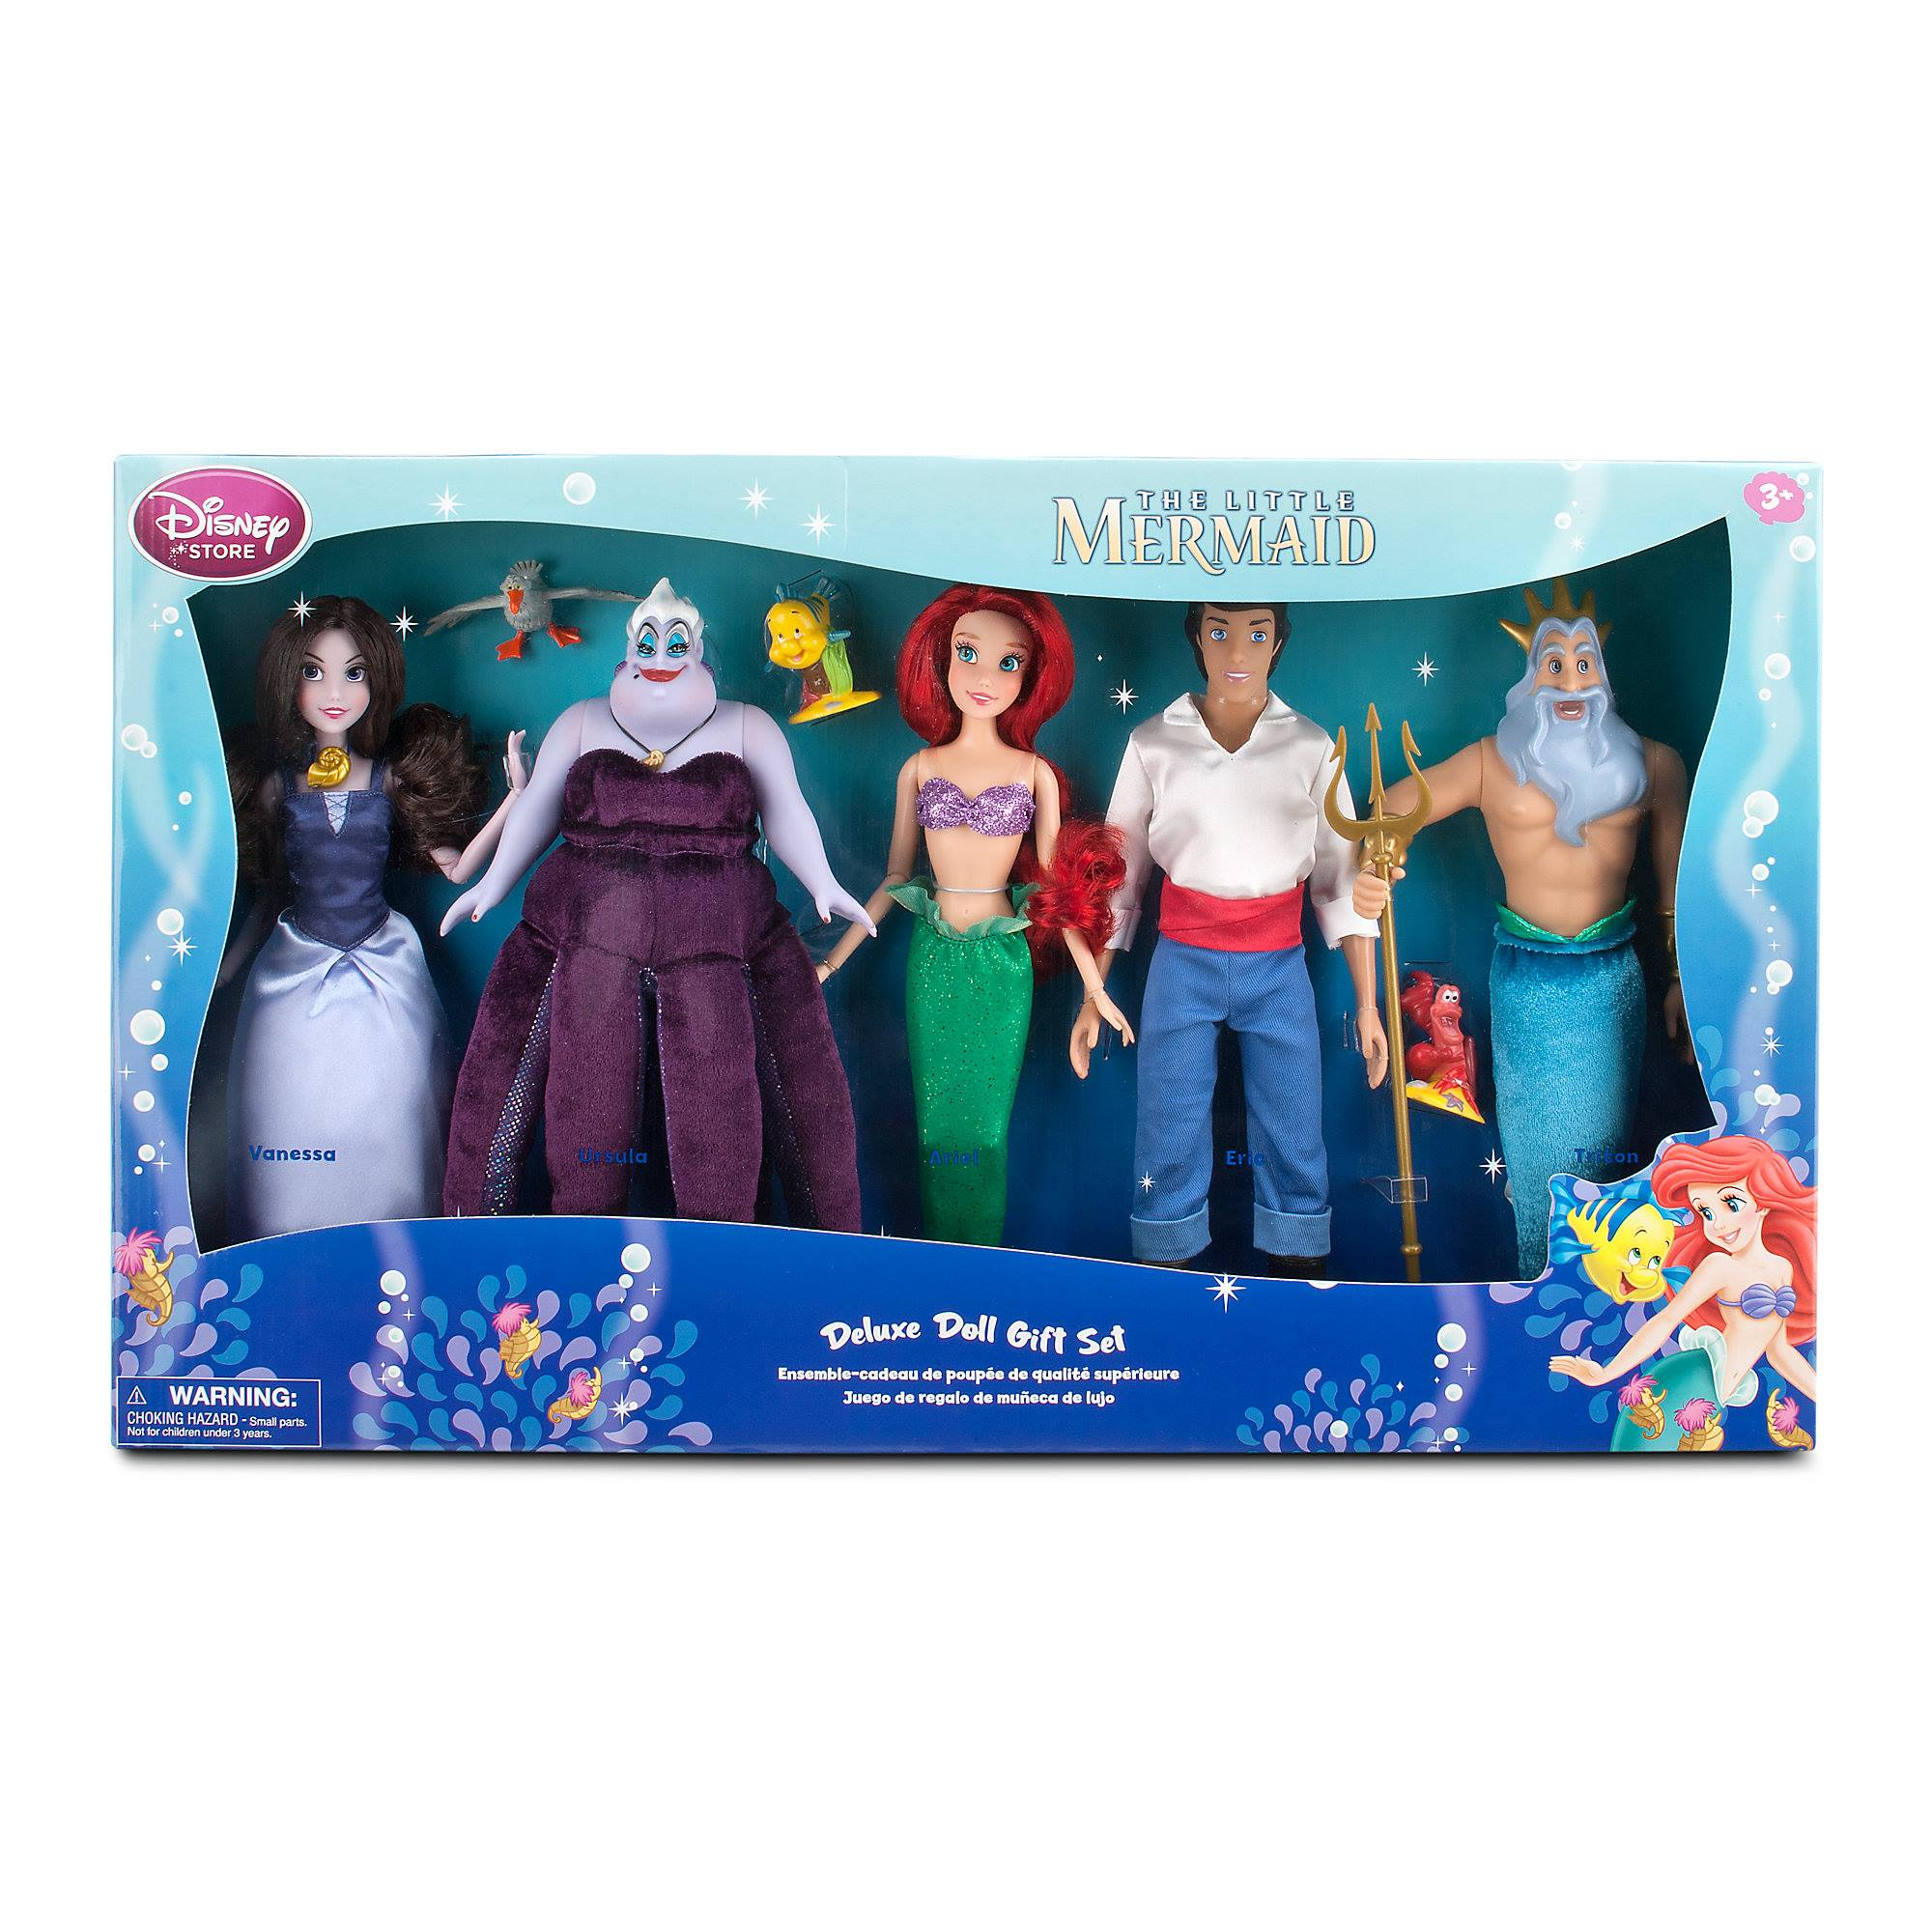 Mermaid Gift Ideas The Newest Little Mermaid Toys And Products Make Great